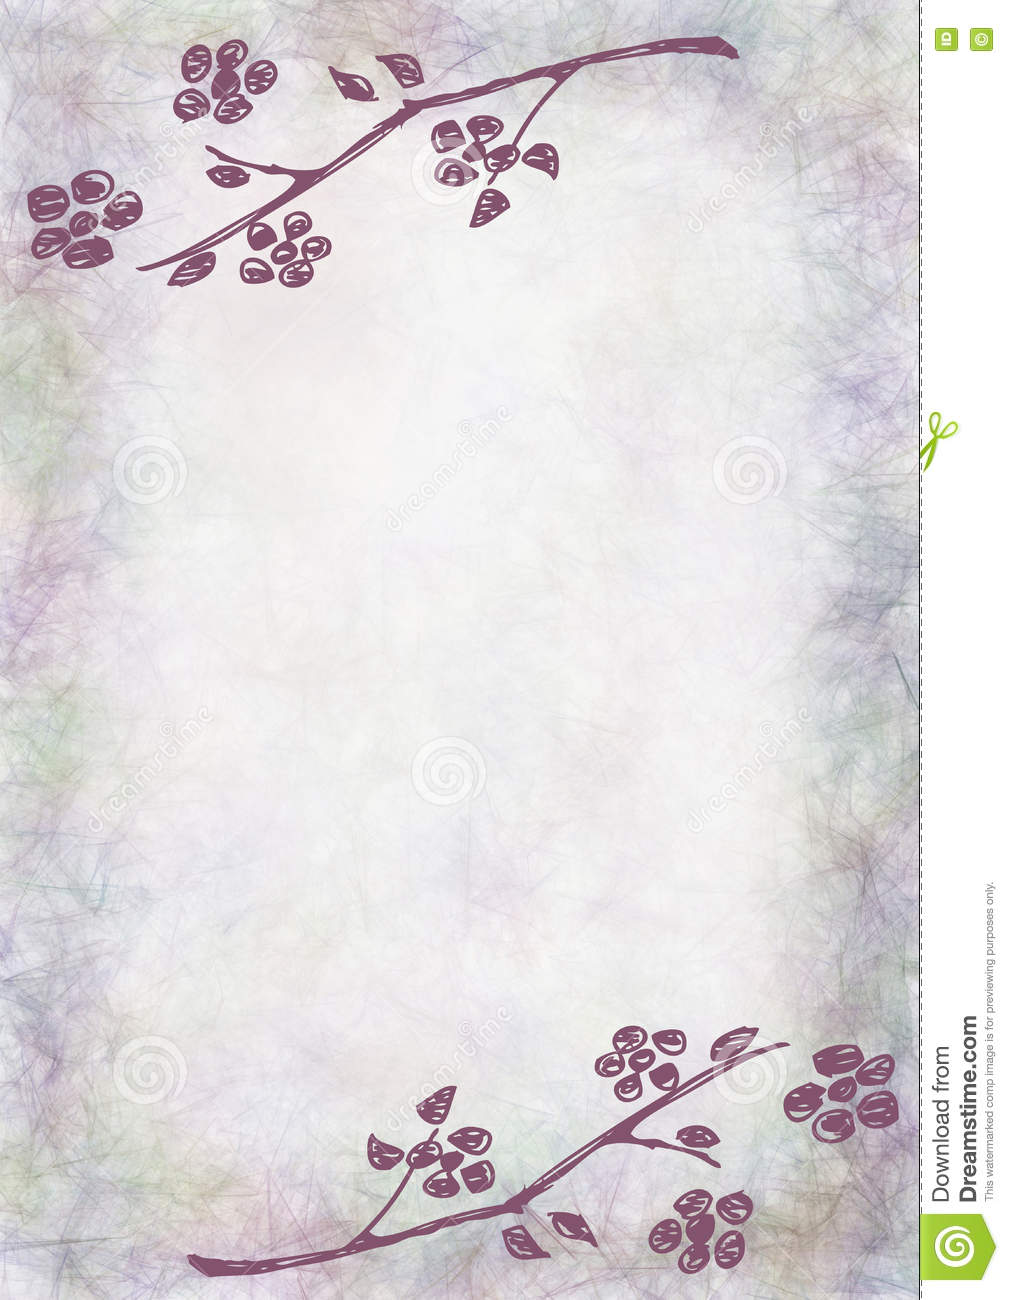 hand drawn textured floral background vintage card with flowers and